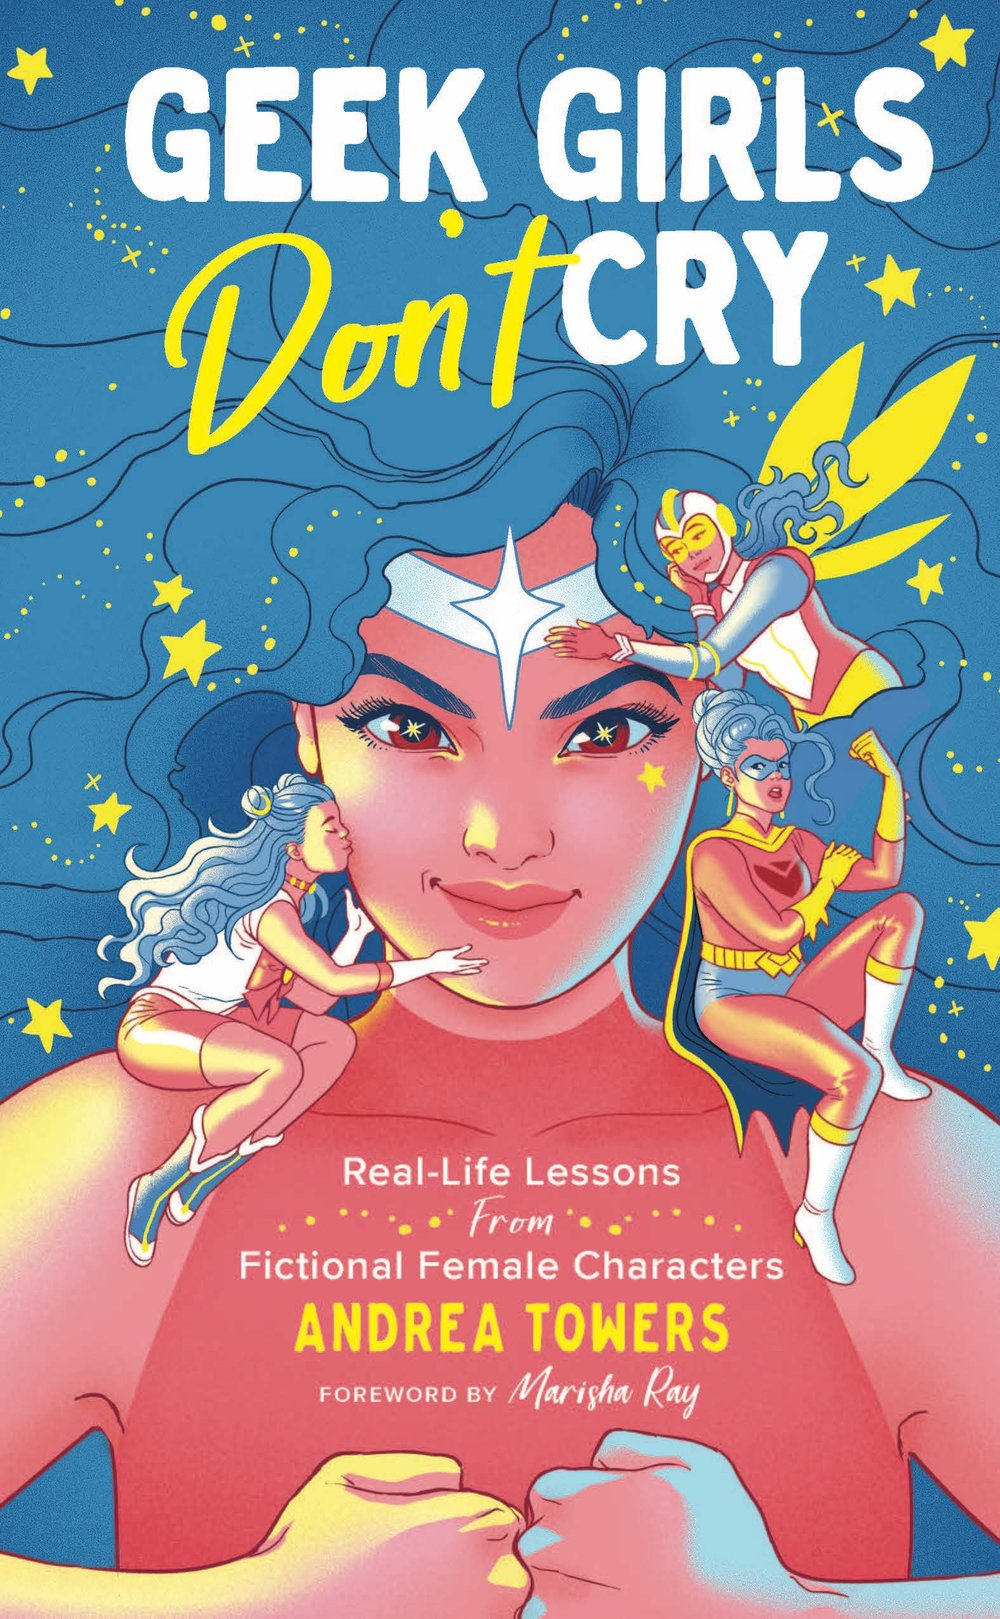 Geek Girls Don't Cry  by Andrea Towers will be published by Sterling Publishing on April 2, 2019.